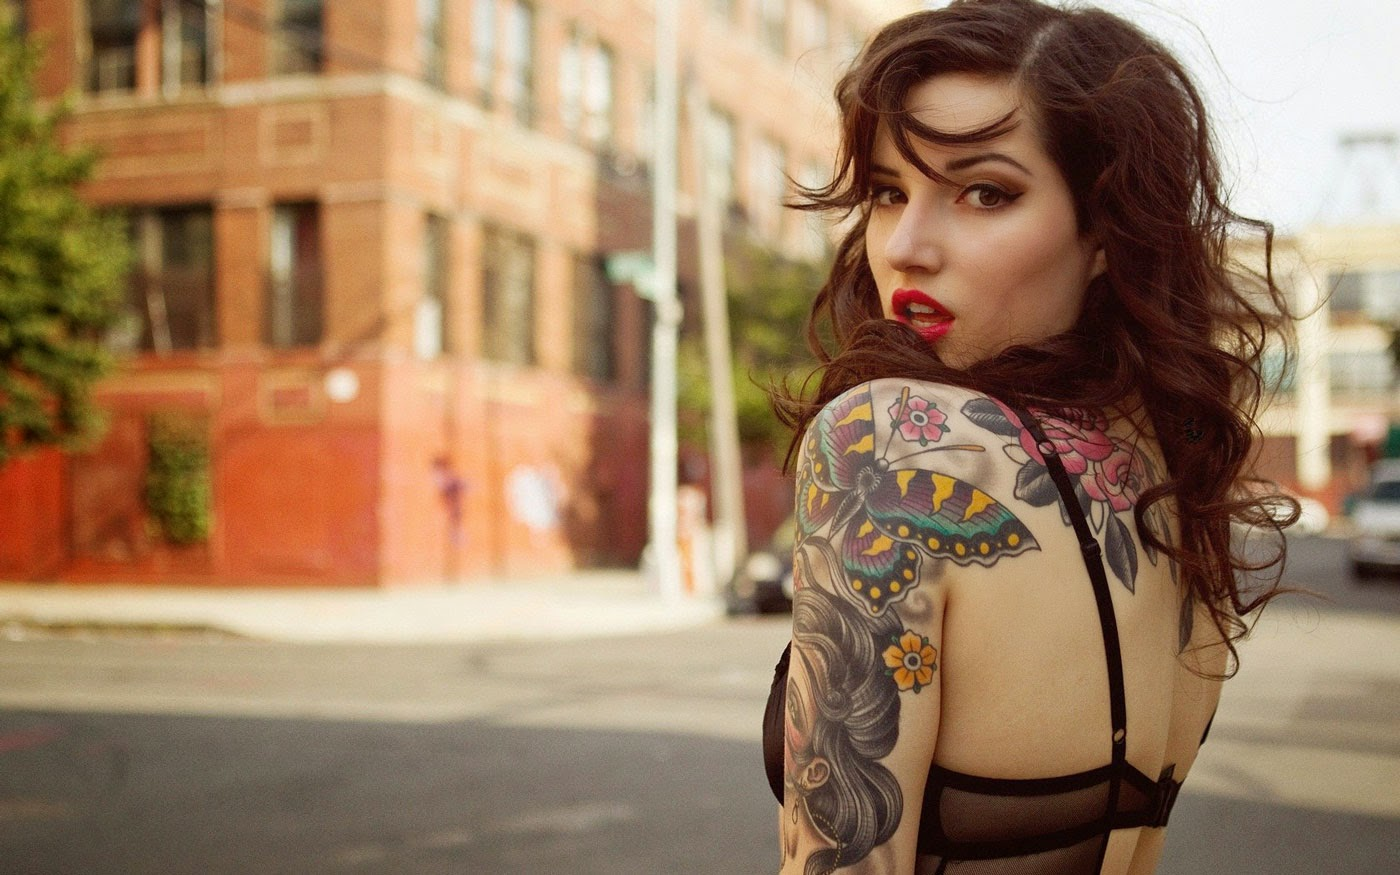 Hand Tattoo Girl Wallpaper